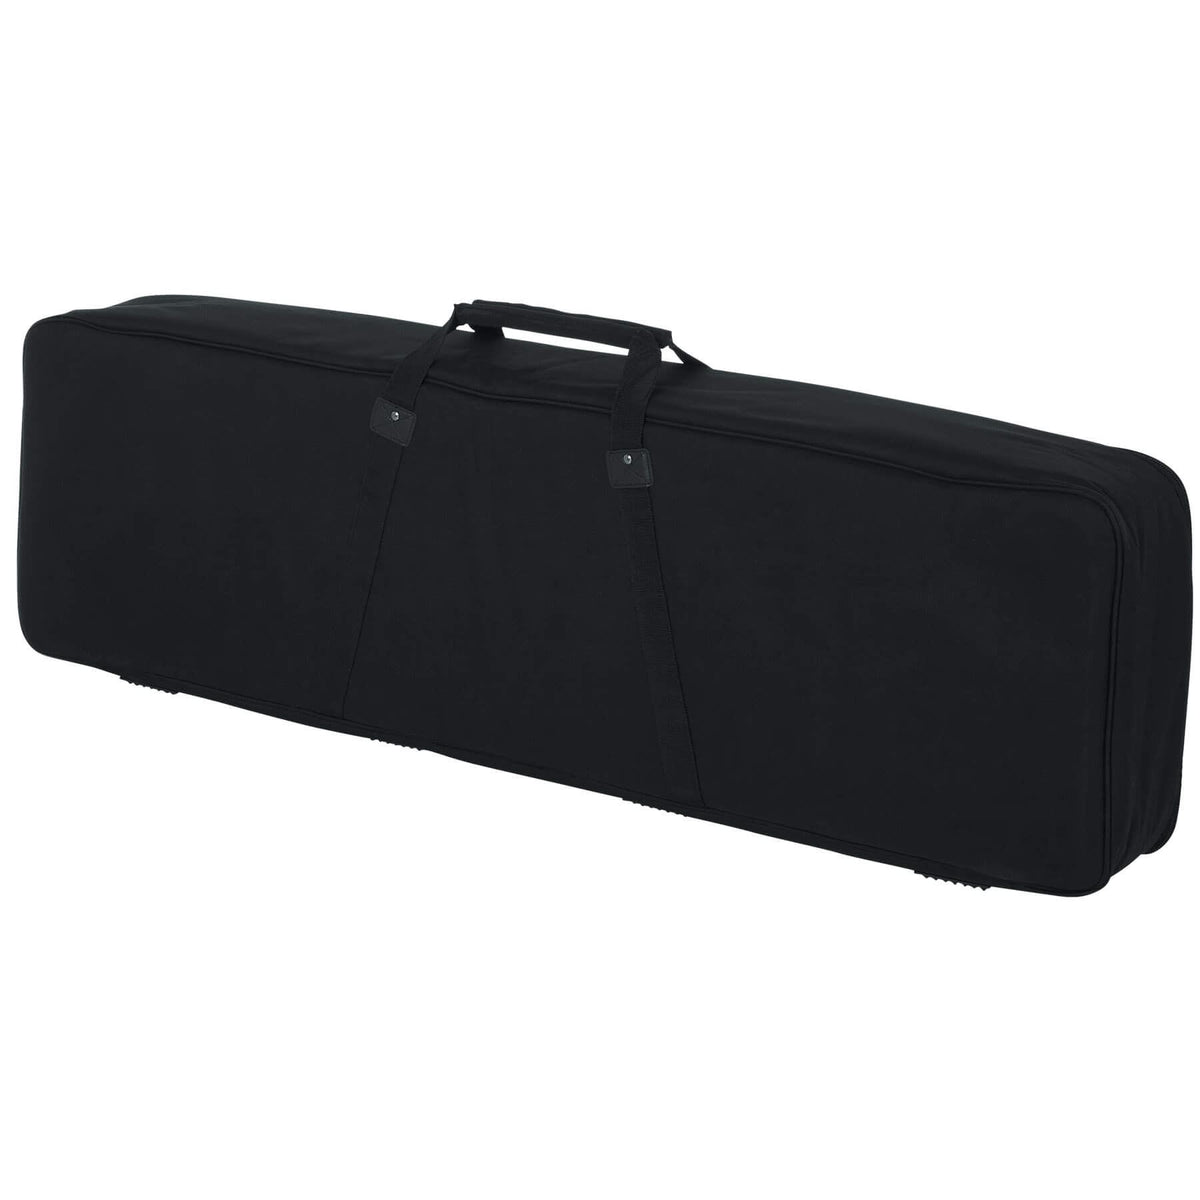 Gator Cases Keyboard Slim Gig Bag for Casio PX-3, PX-300, PX-310, PX-320